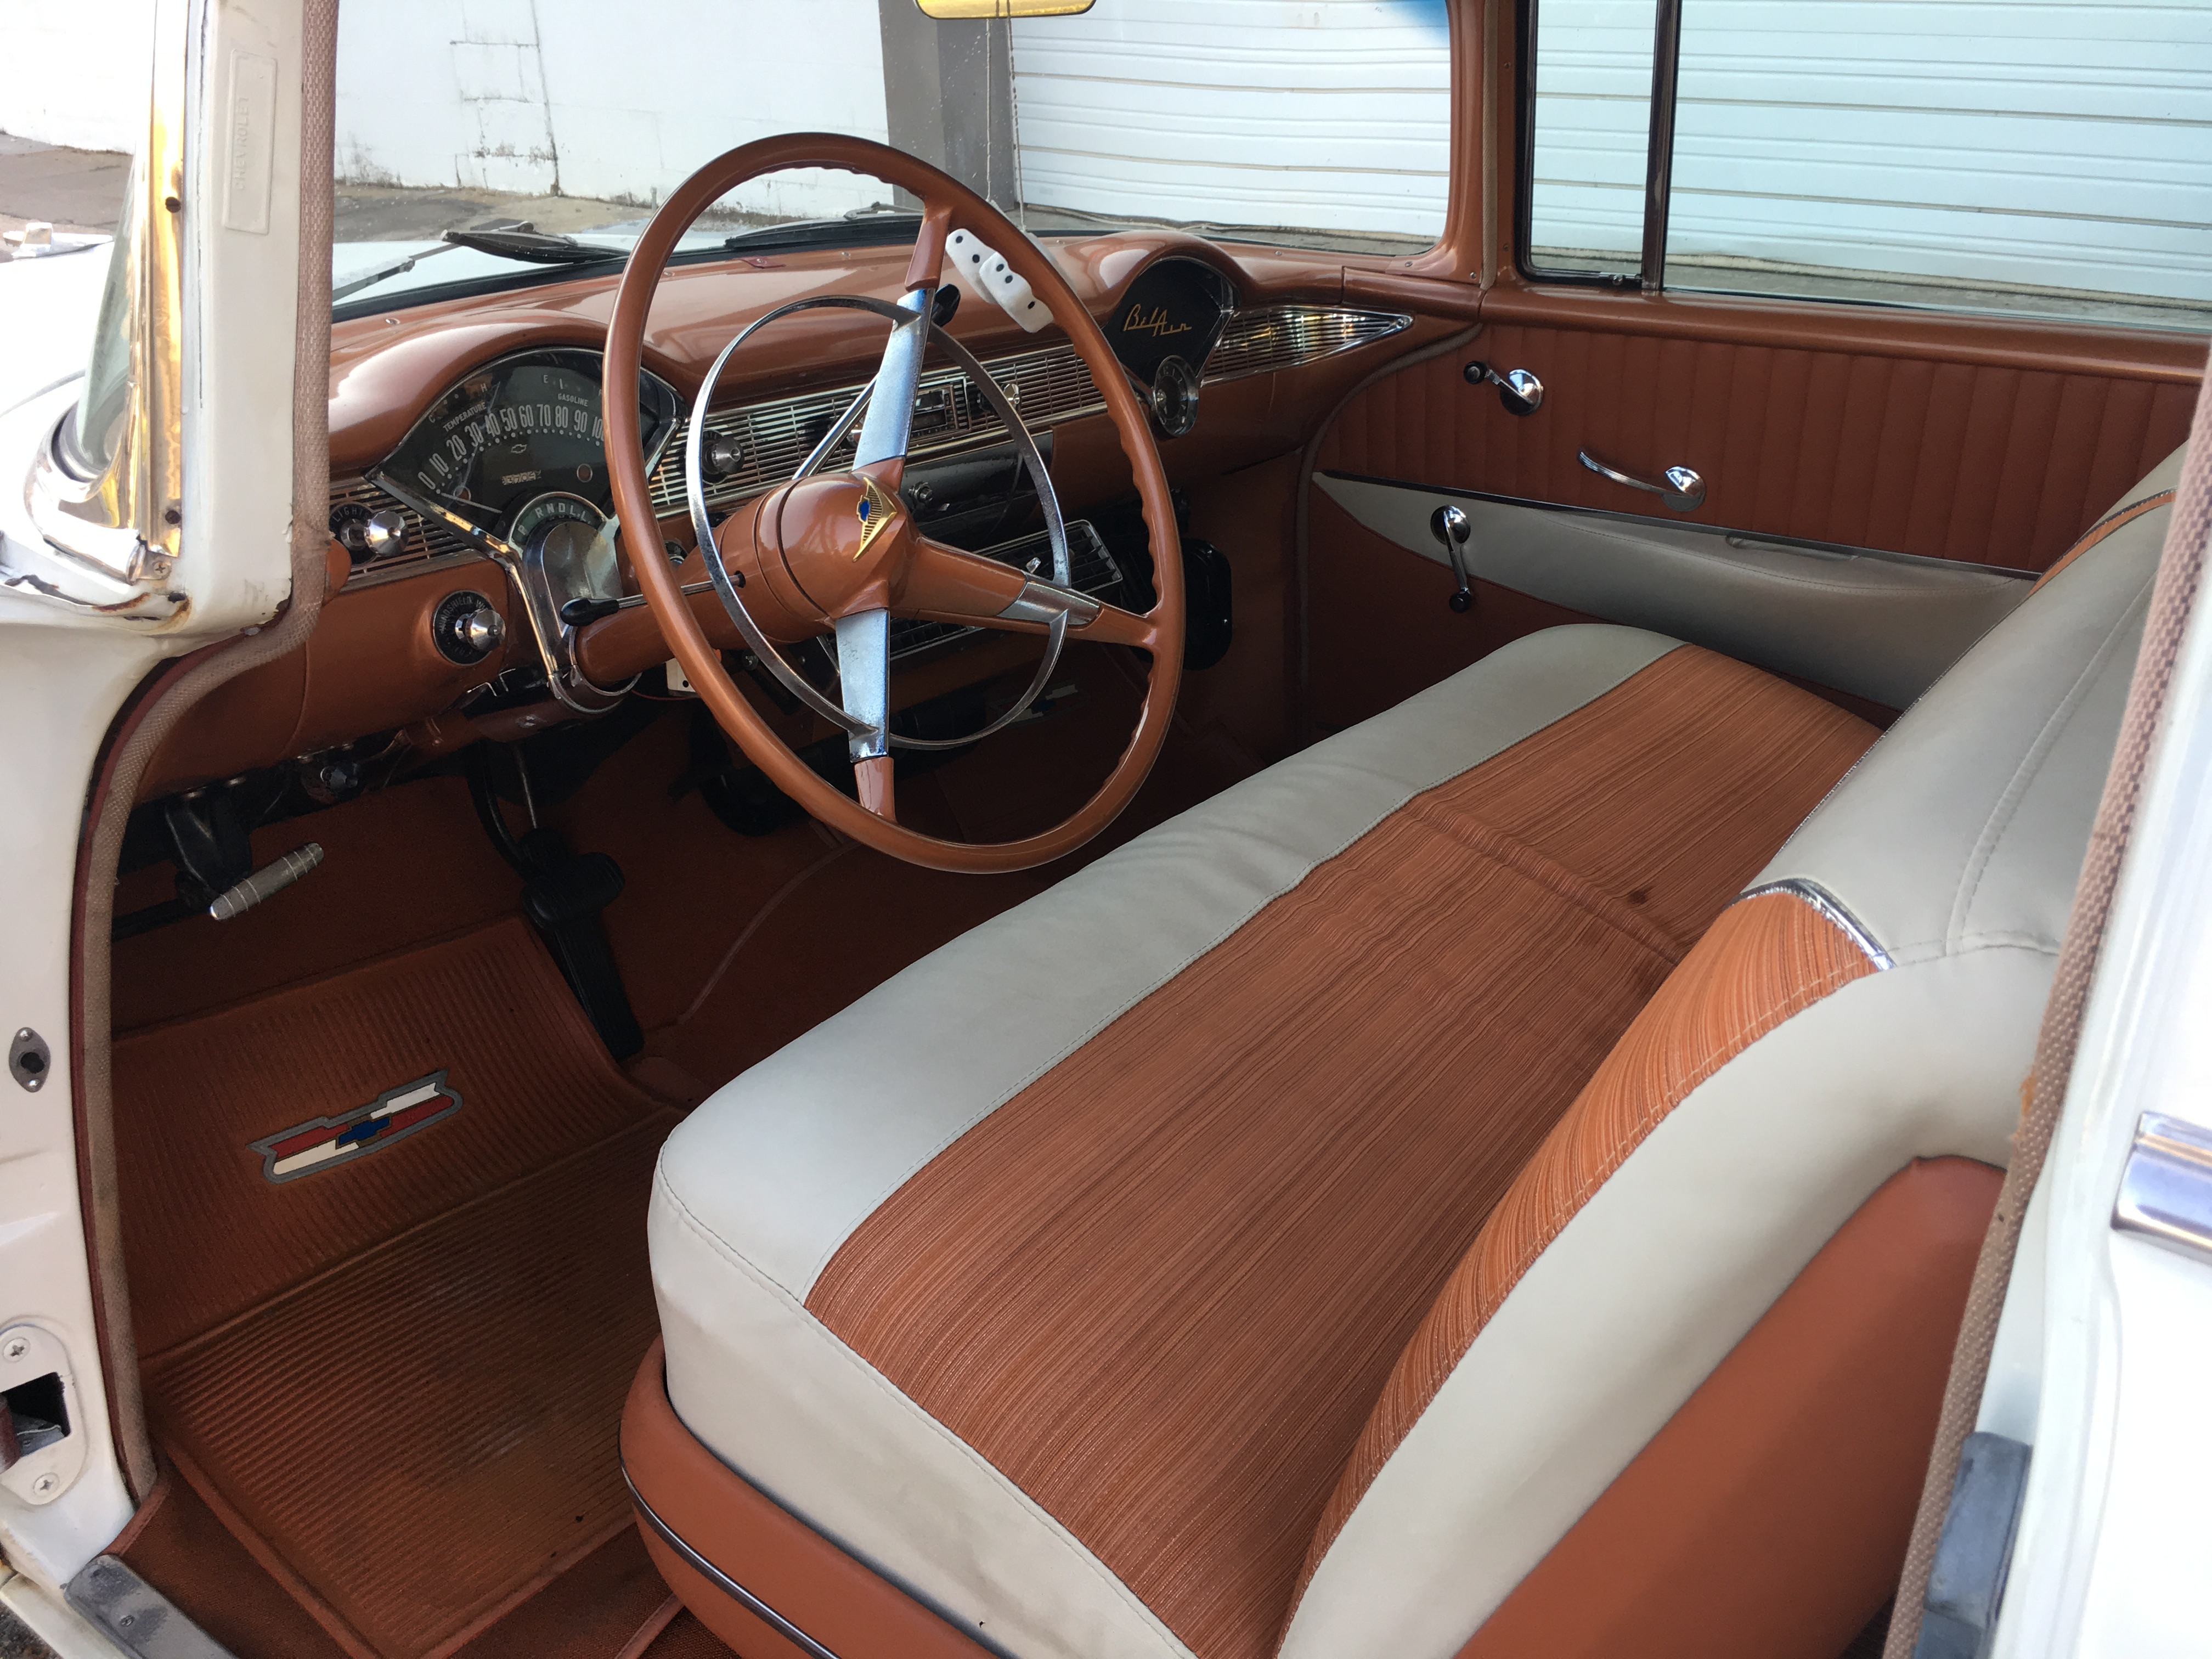 1951 Chevrolet Coupe For Sale At Vicari Auctions Biloxi 2017 Chevy Steering Wheel 7th Image Of A